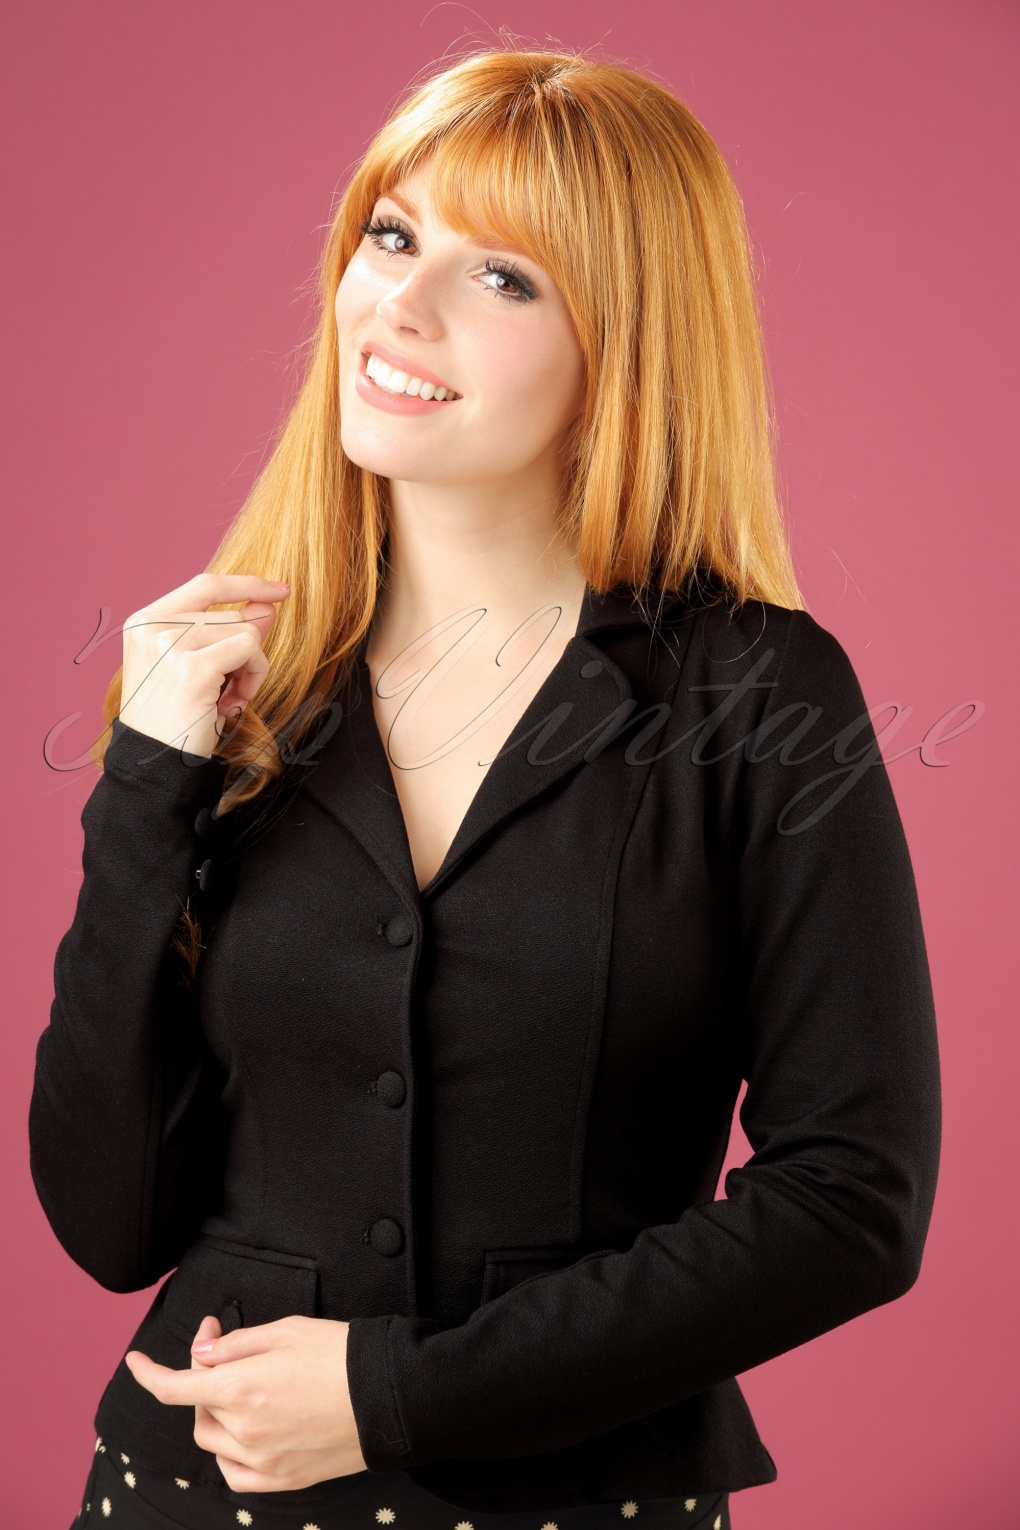 New 1940s Style Coats and Jackets for Sale 40s Milano Crepe Blazer Jacket in Black £104.23 AT vintagedancer.com